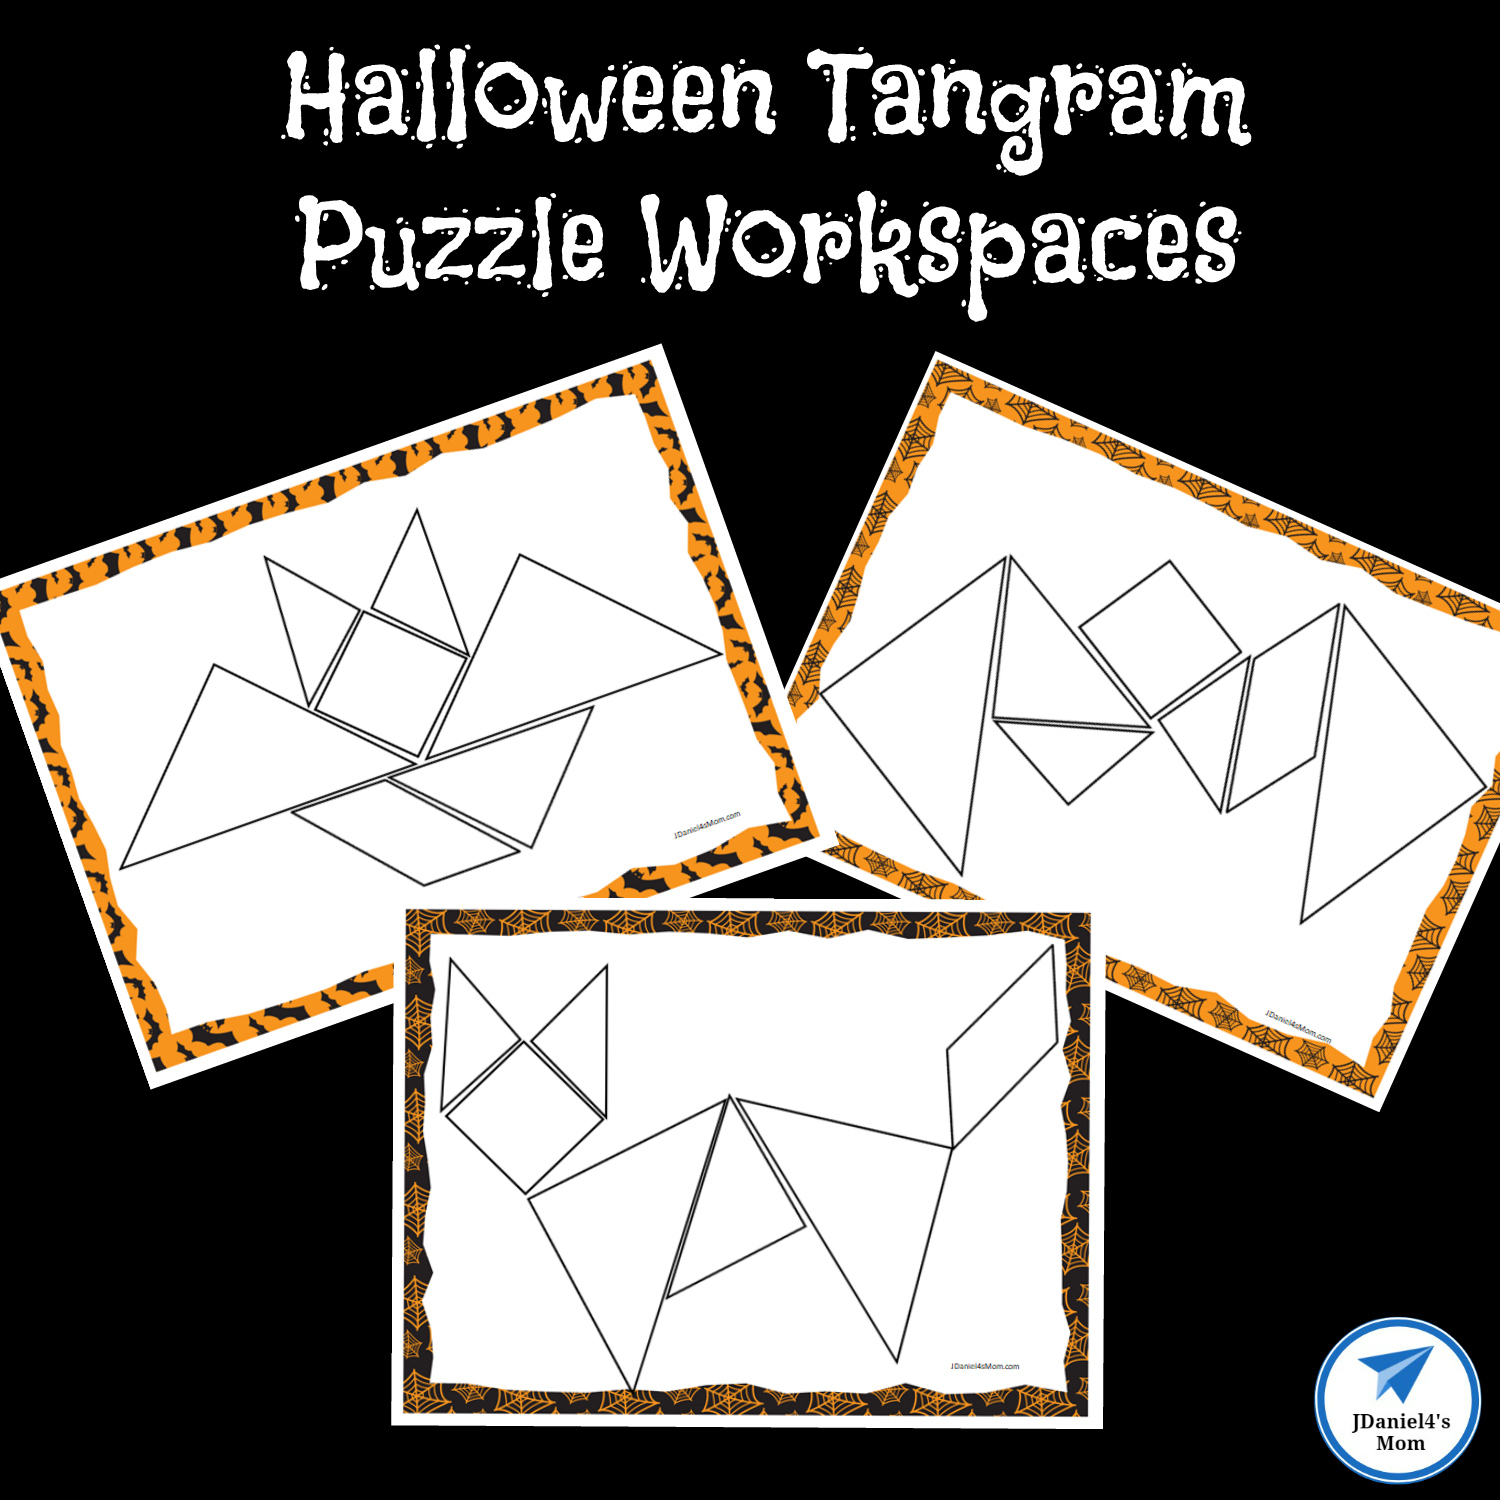 Halloween Themed Printable Tangram Puzzles - Jdaniel4S Mom | Printable Tangram Worksheets